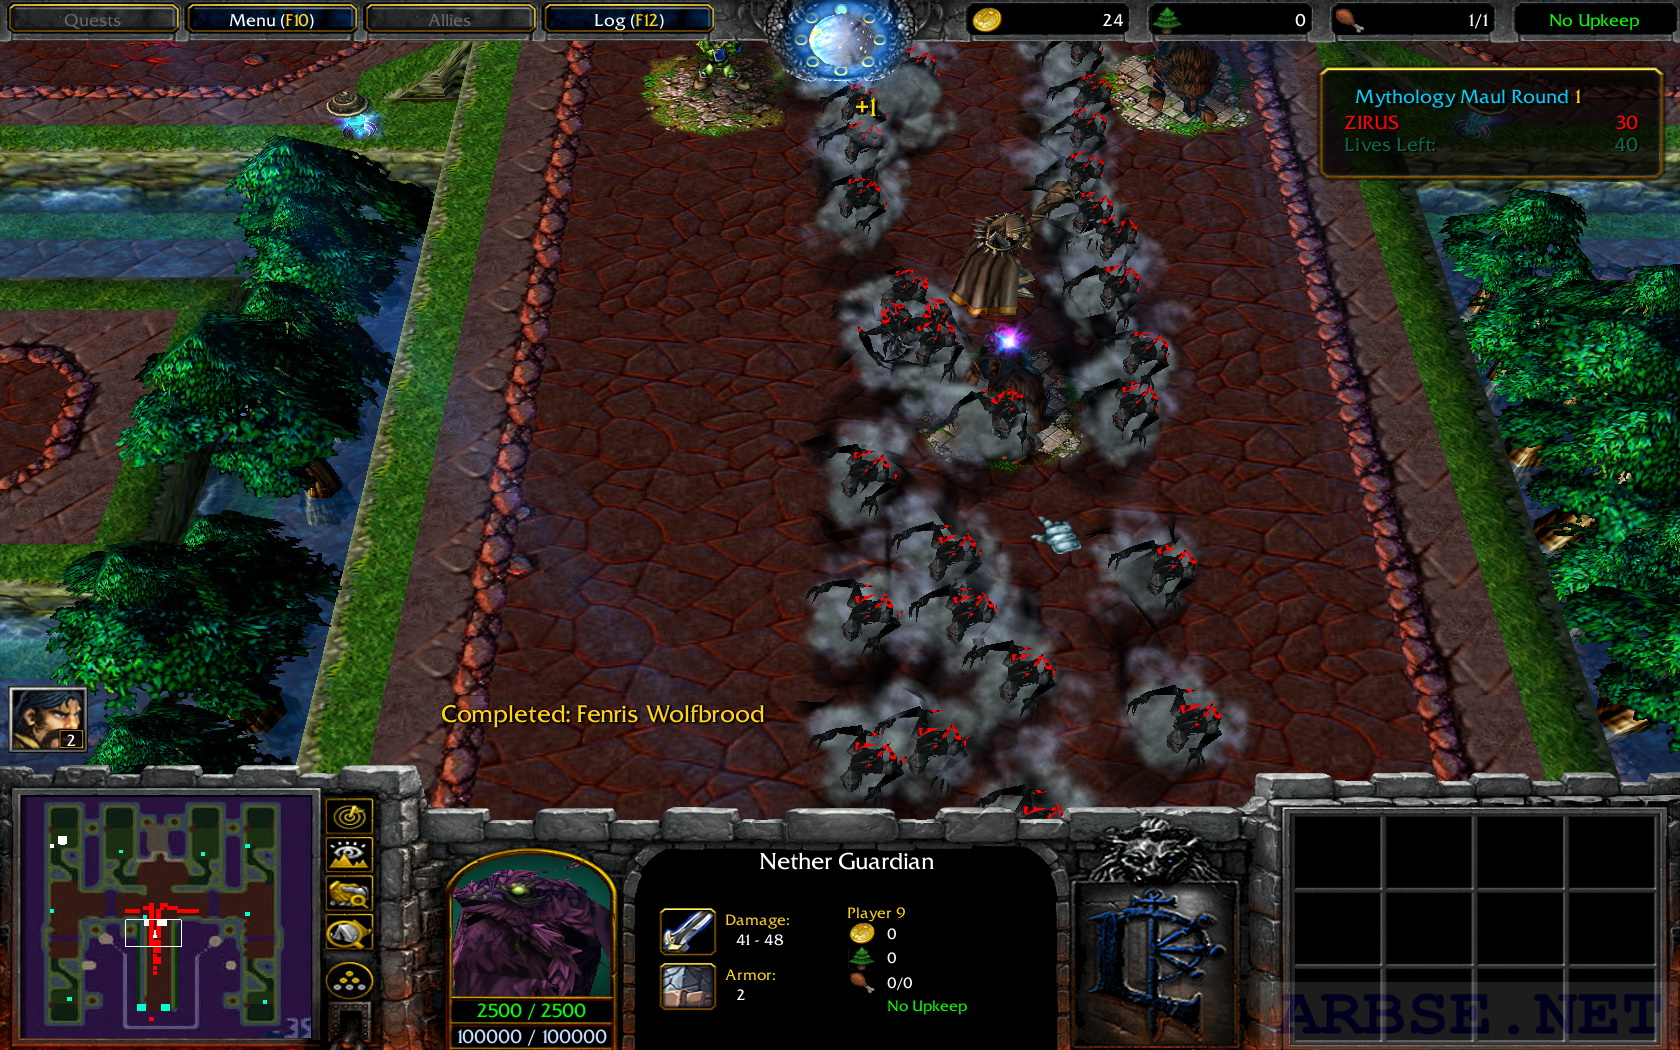 Warcraft 3 sex maul map exploited scenes